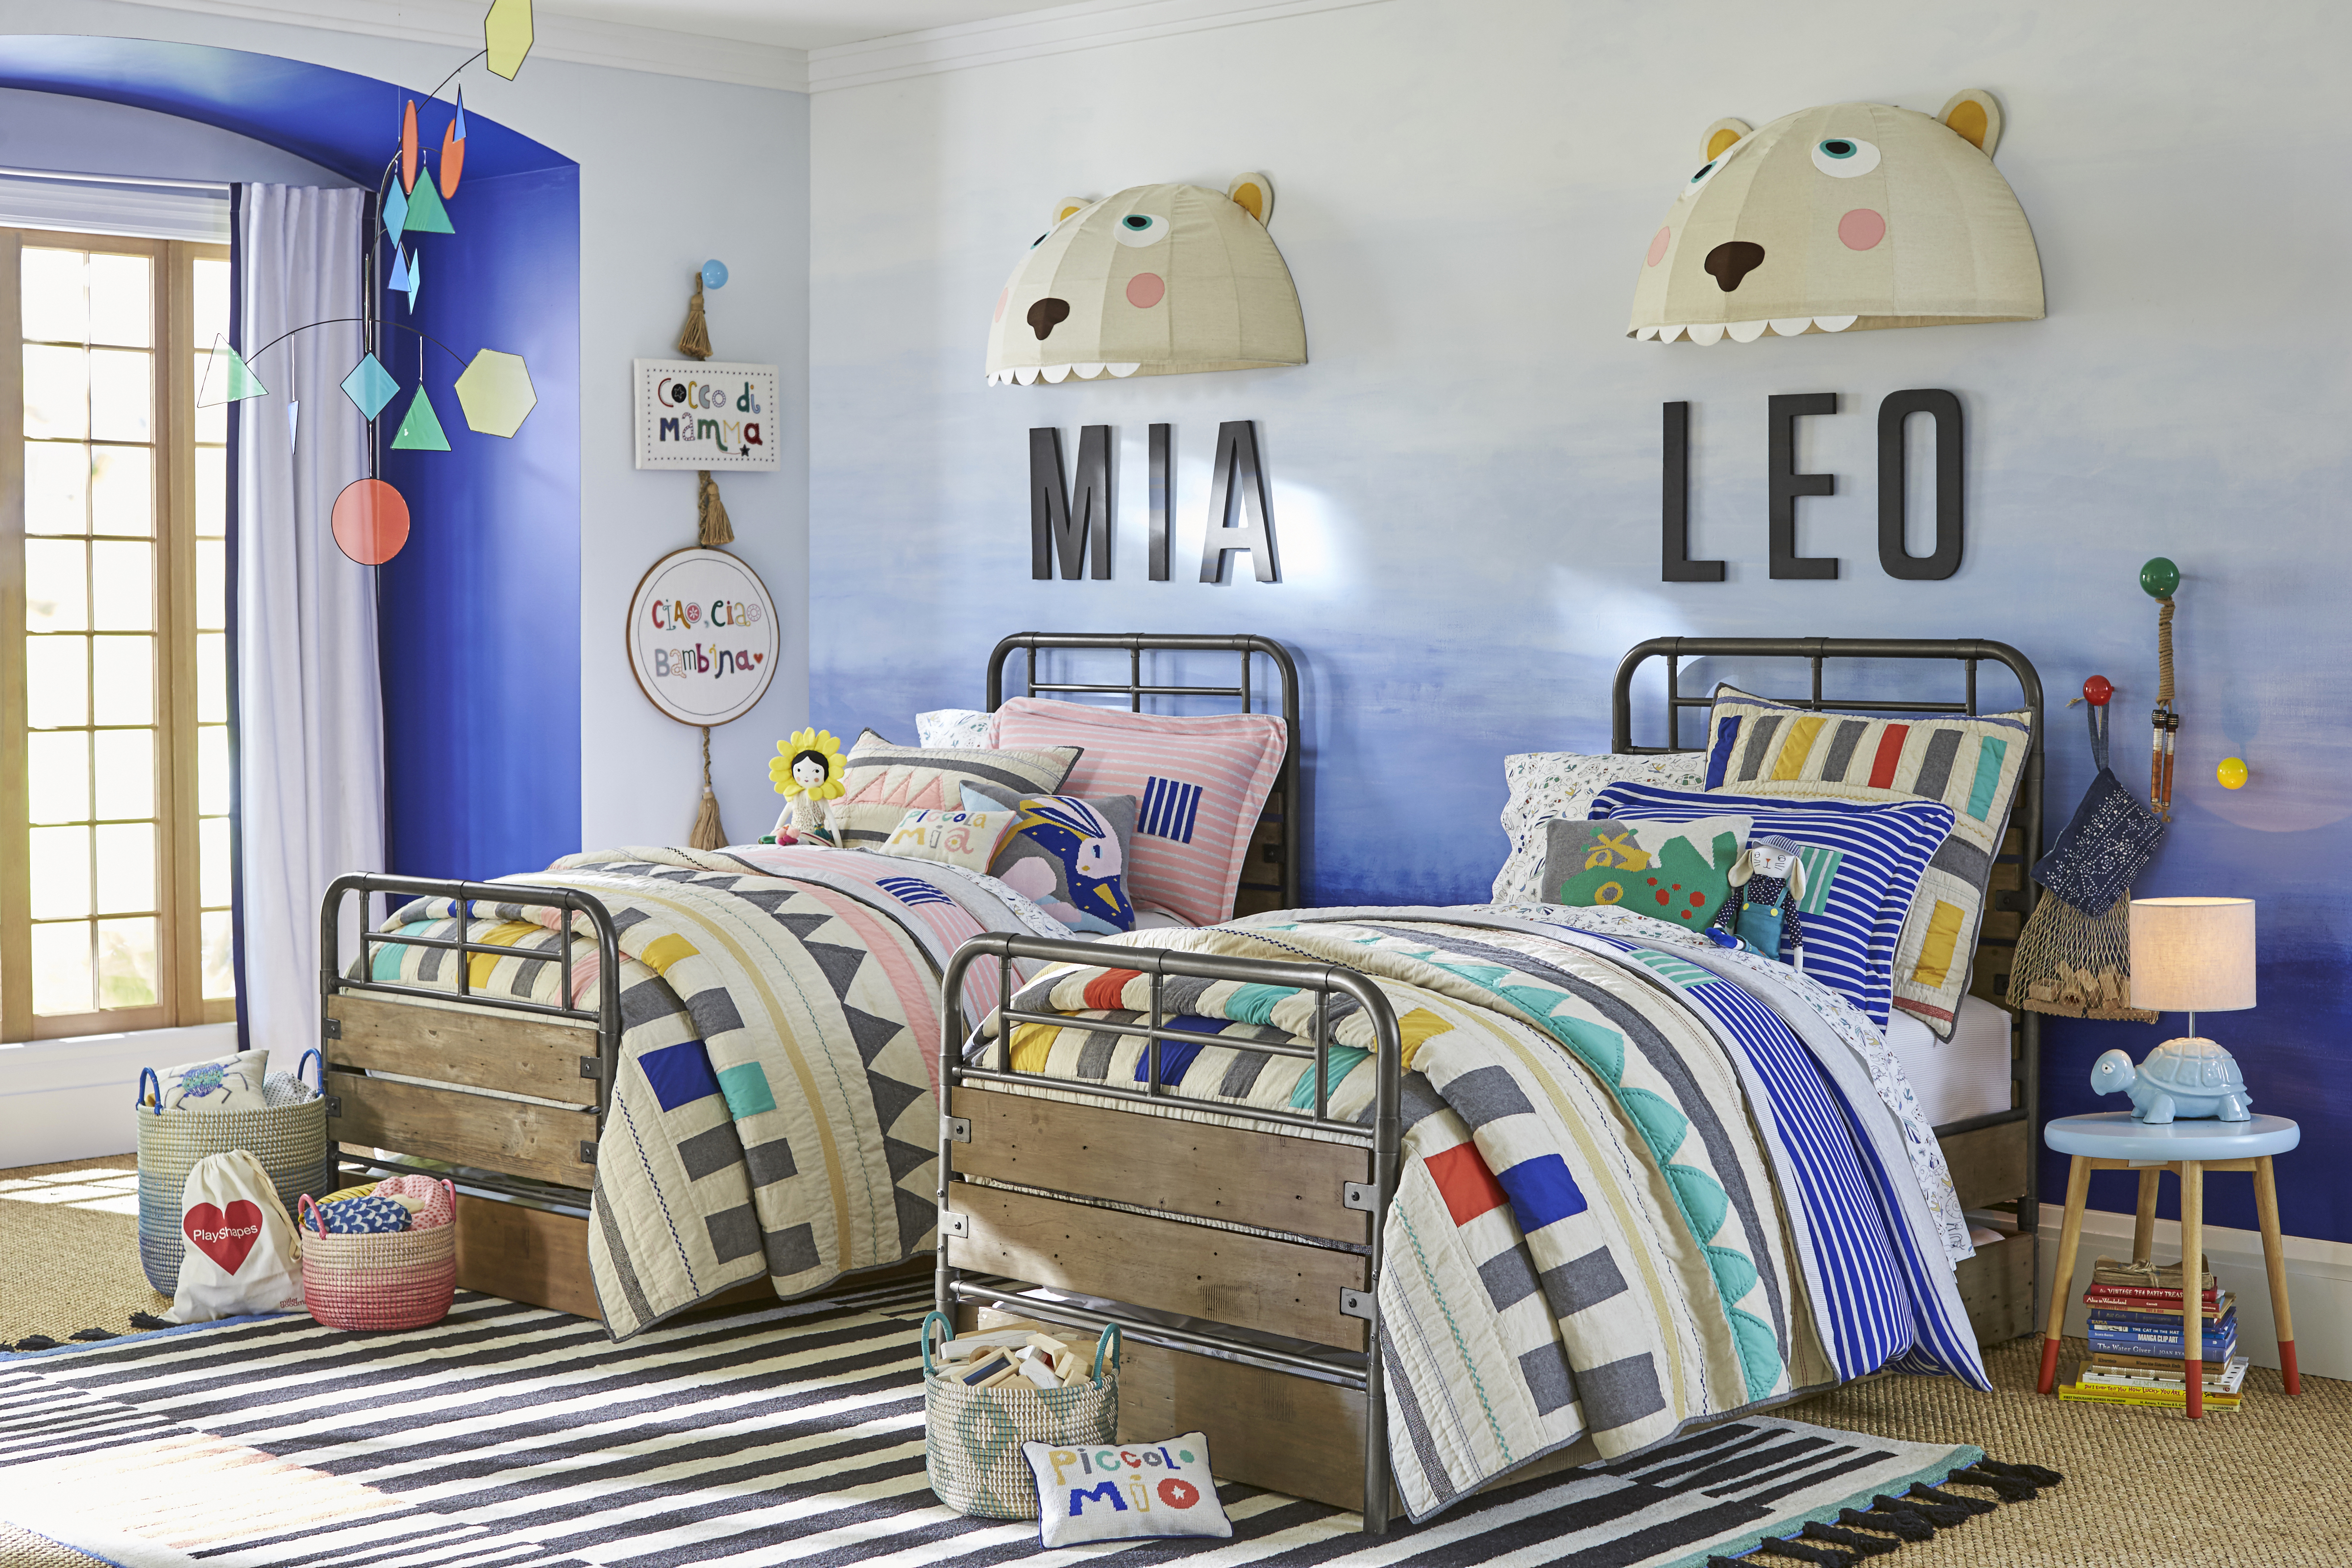 pottery barn kids debuts exclusive collaboration with designerdownload full size